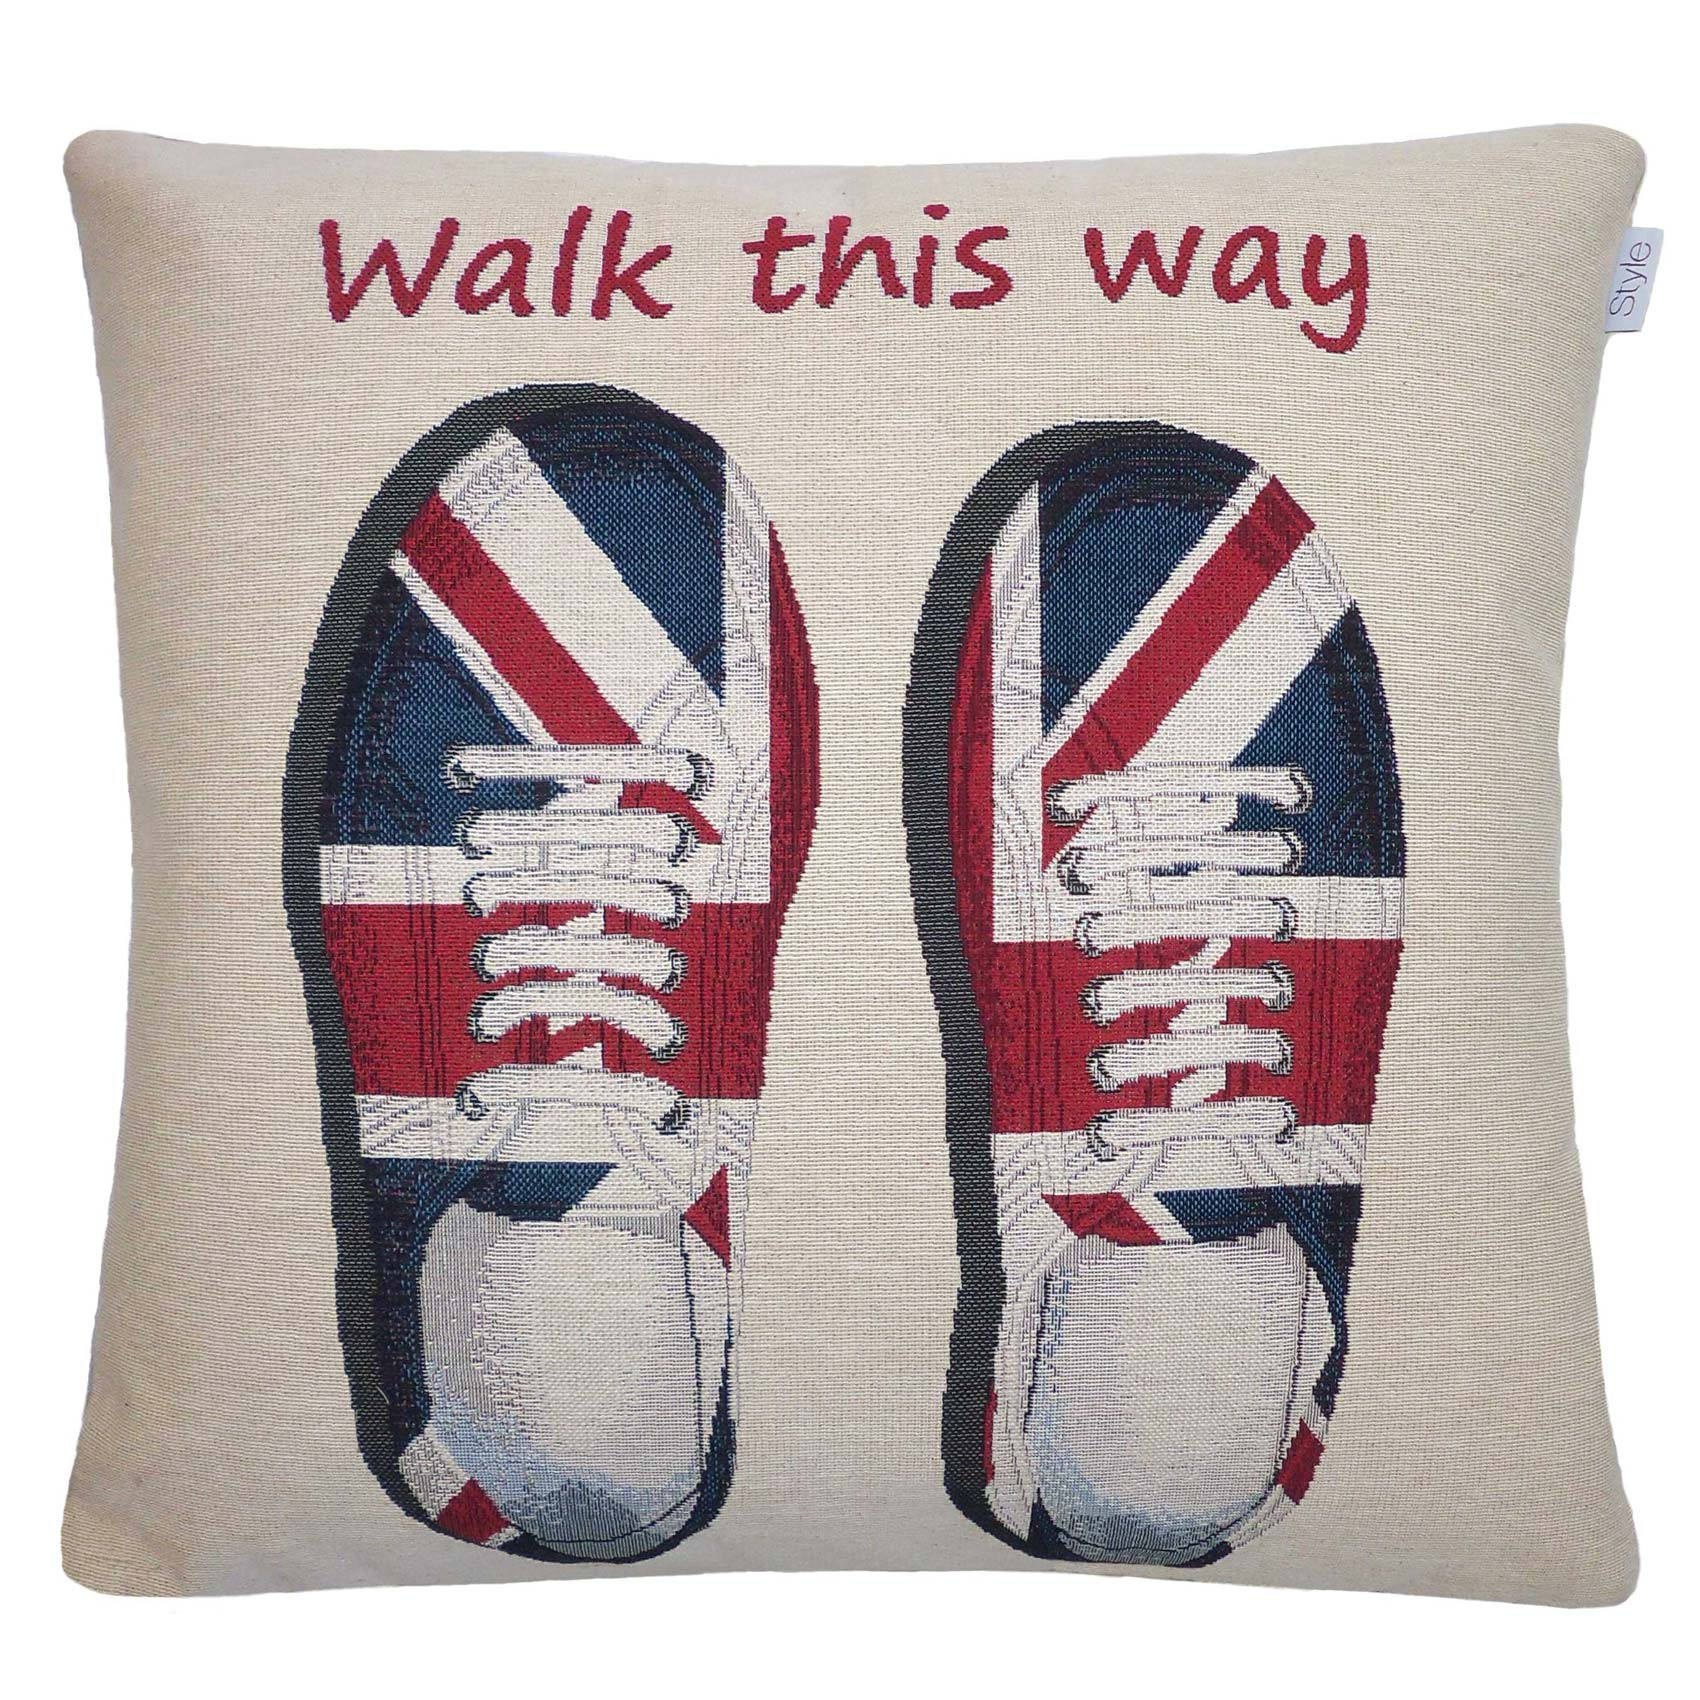 Vintage Union Jack Shoes Jacquard Cushion Cover, DoveMill £7.95